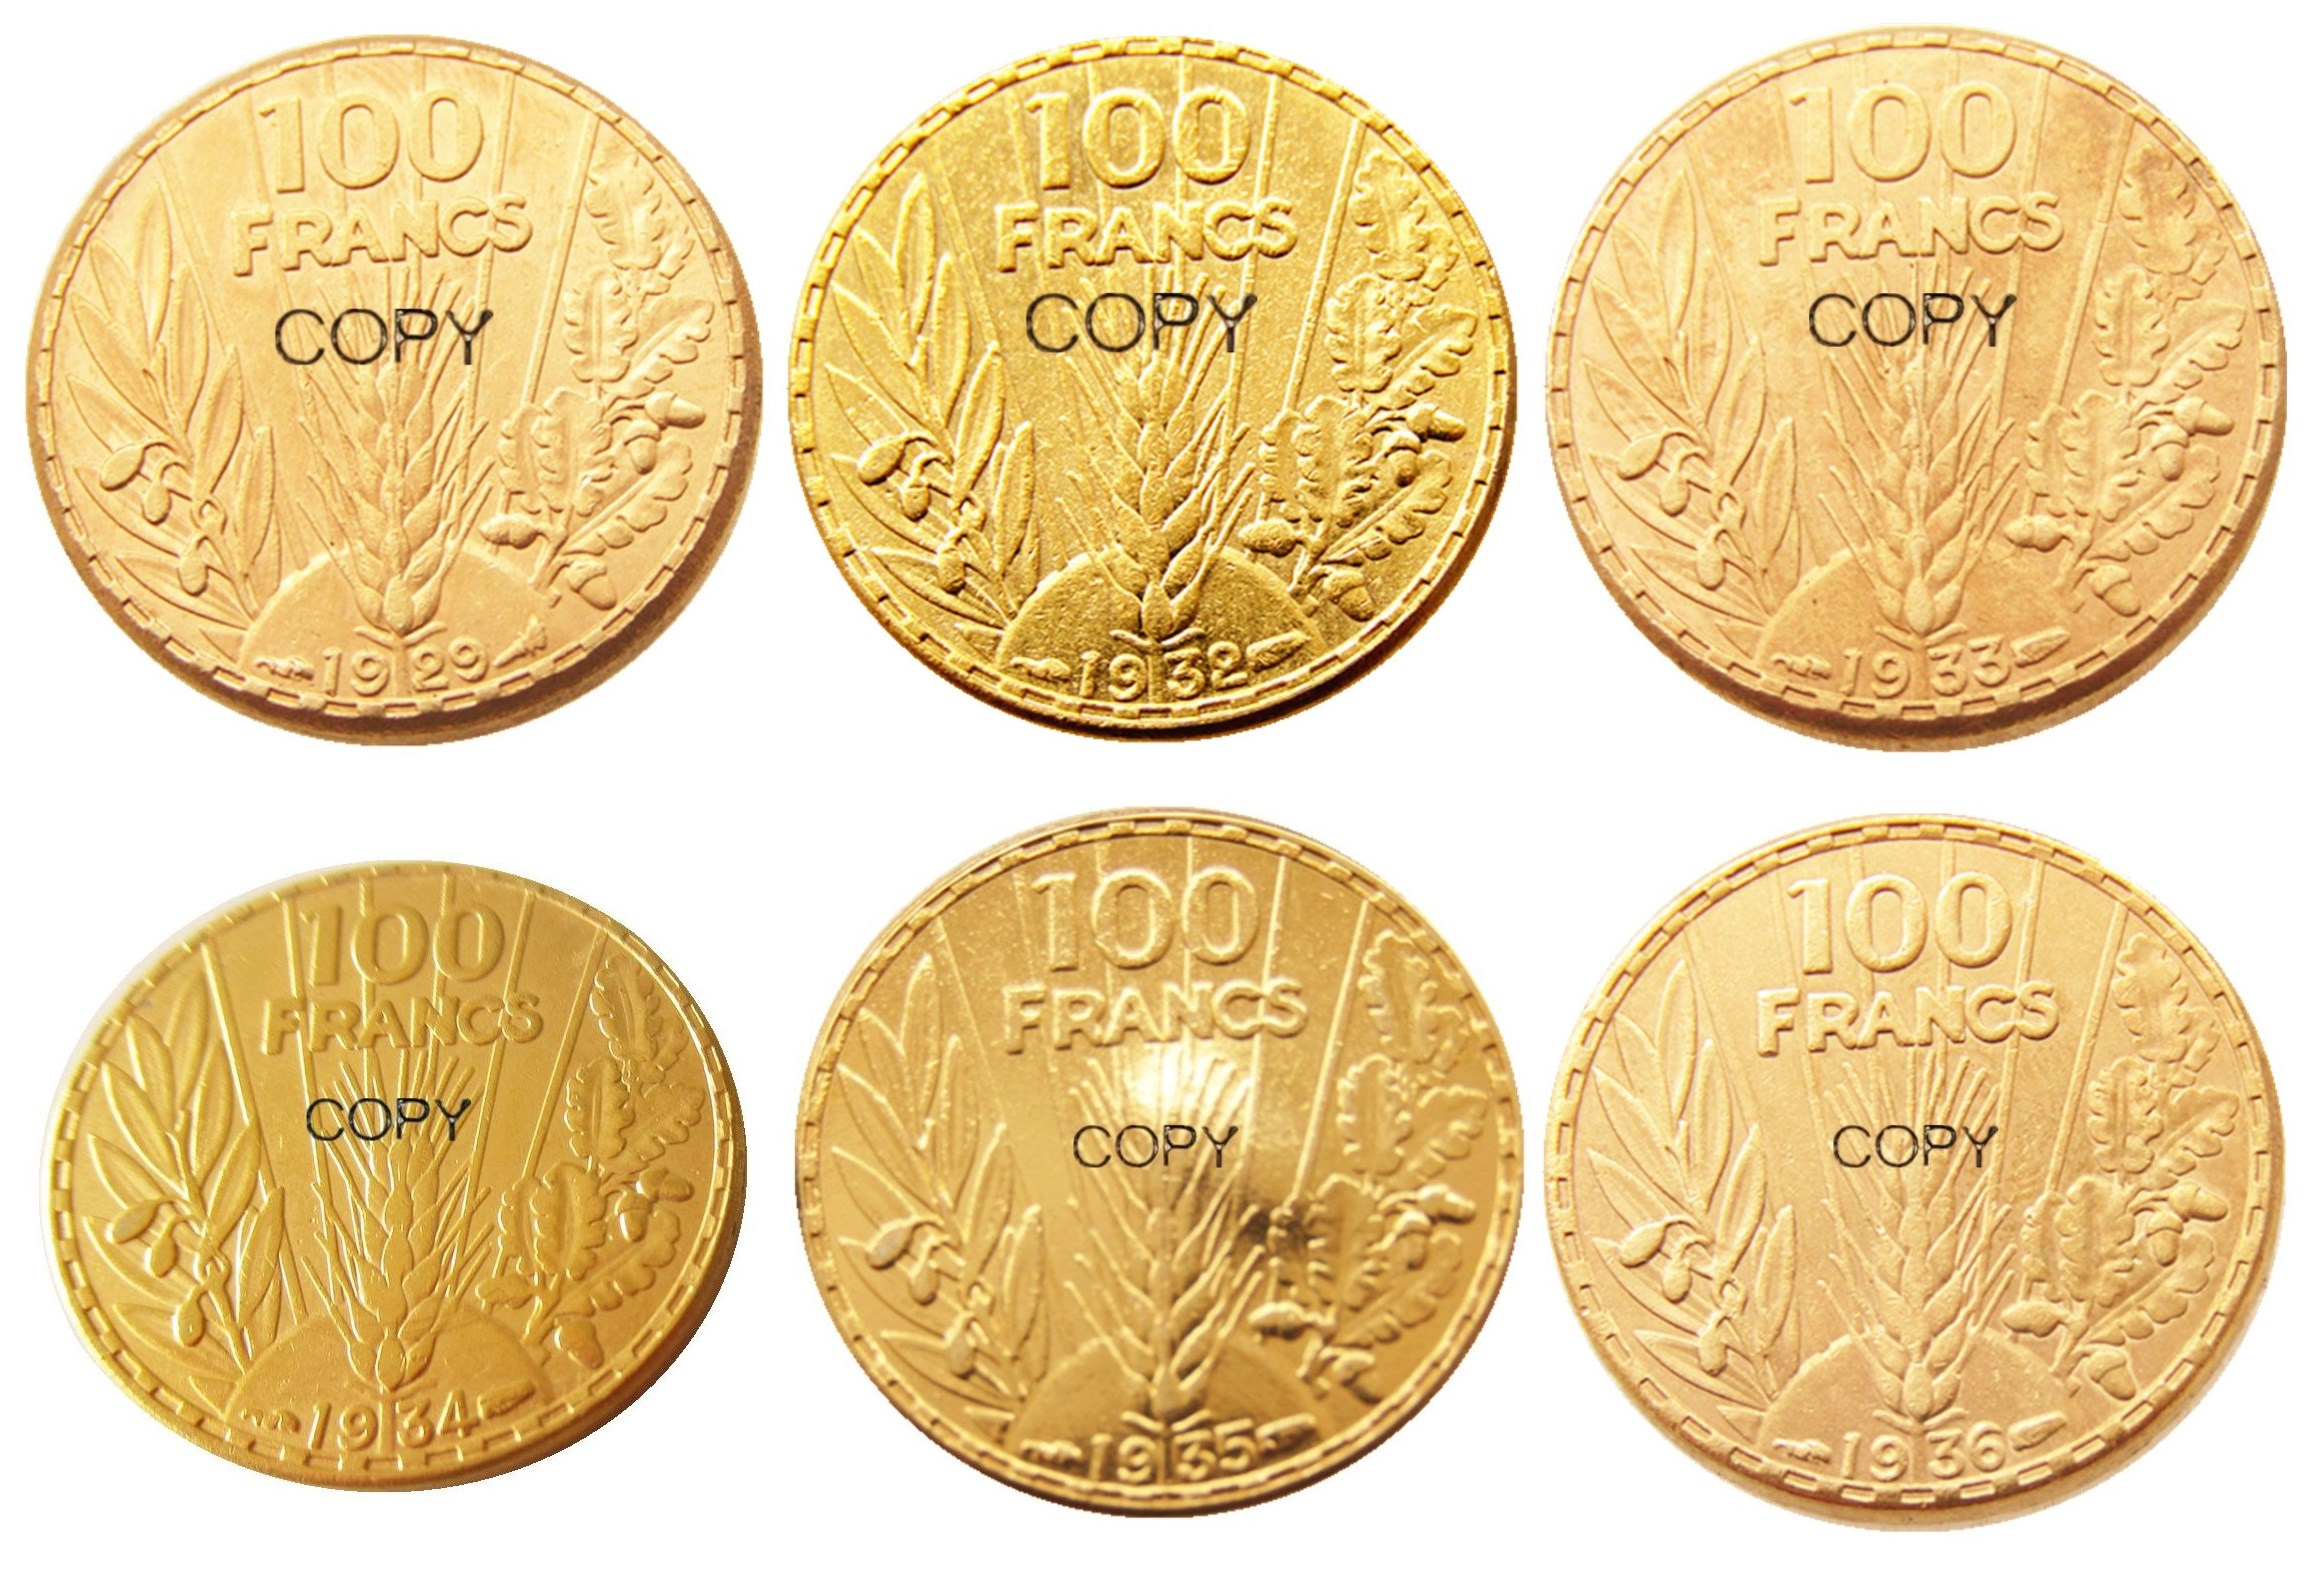 France 100 Francs 1929 - 1936 6pcs Gold Plated Copy Coin